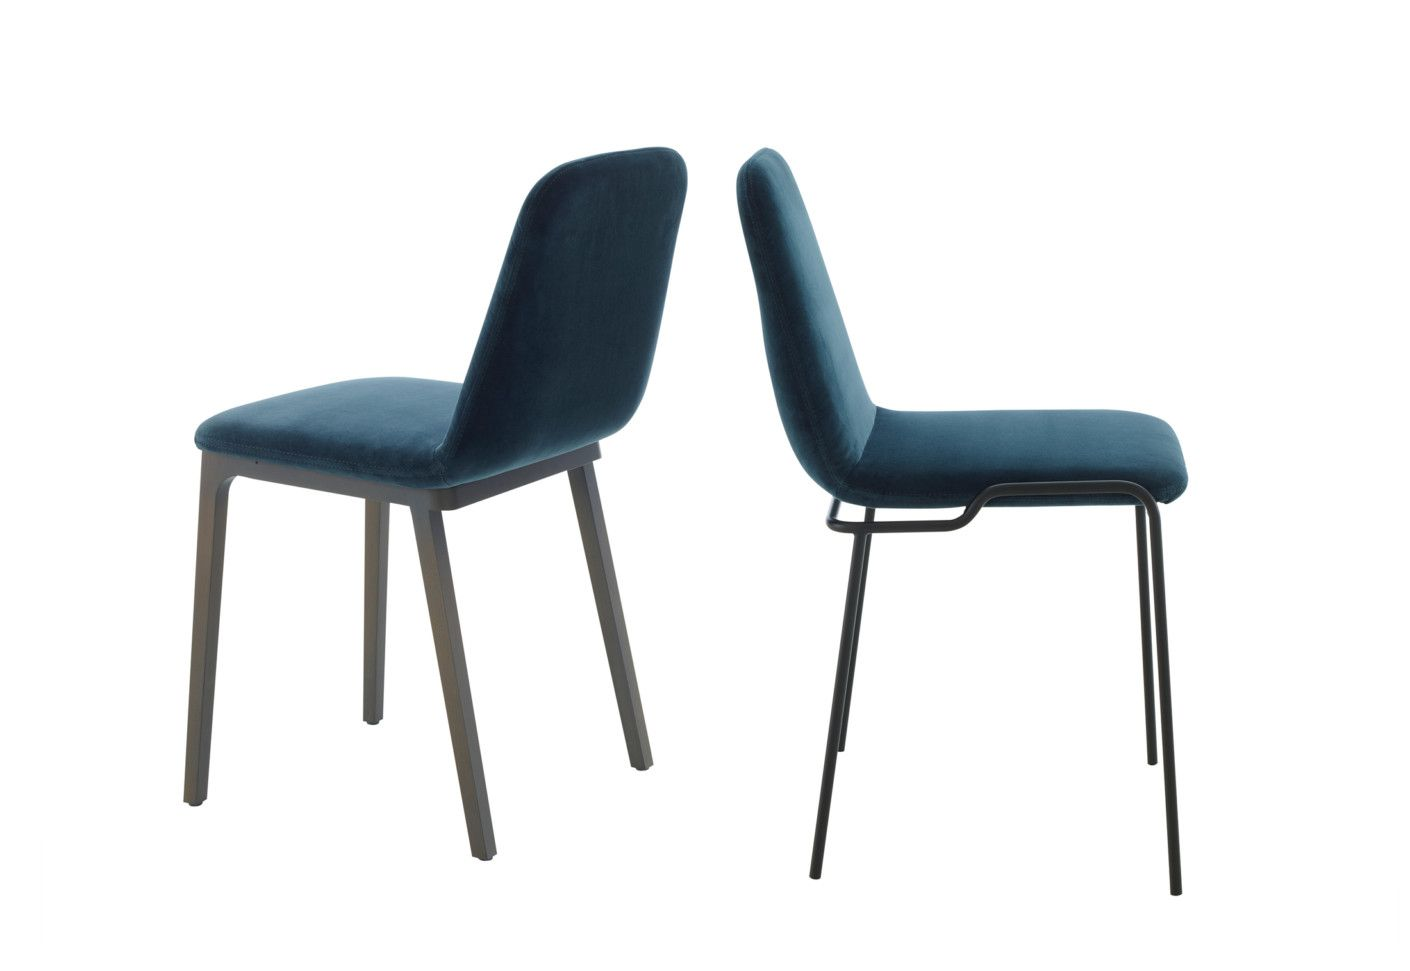 TADAO Chair With Wooden Legs   Designer Chairs By Ligne Roset ✓  Comprehensive Product U0026 Design Information ✓ Catalogs ➜ Get Inspired Now